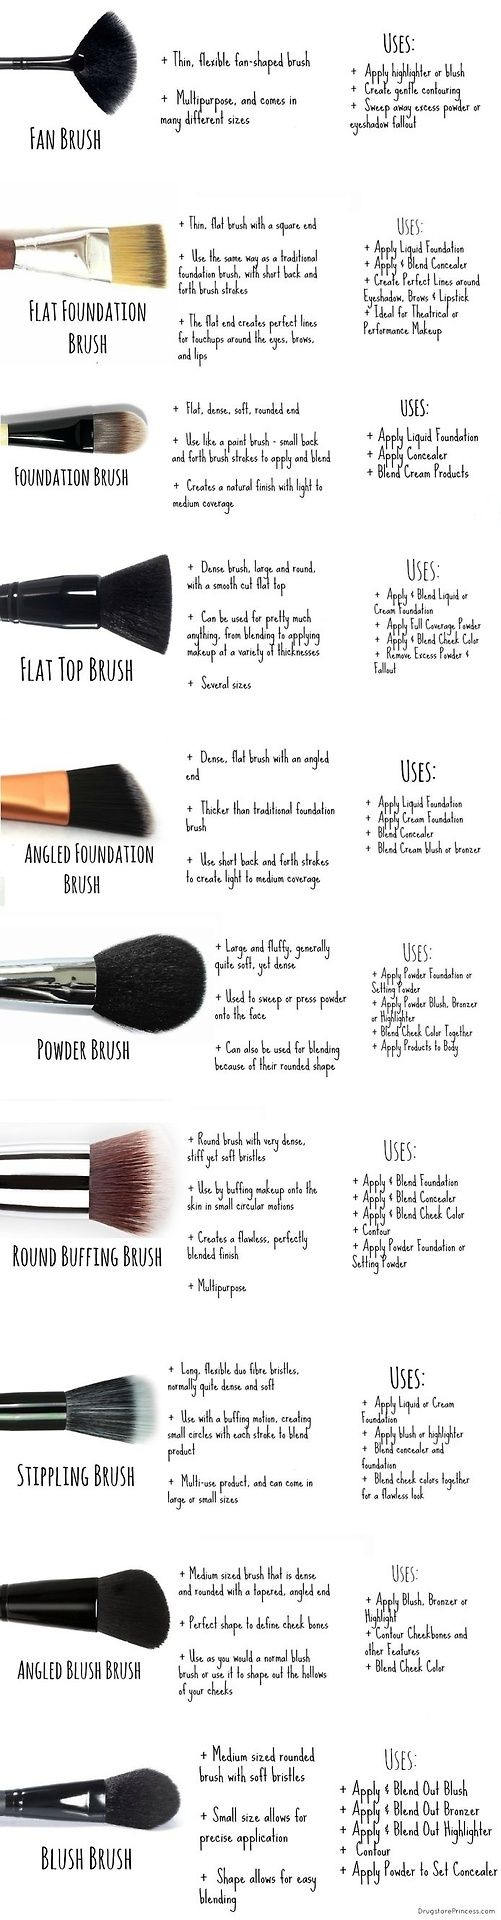 e50c691e4110d477cf842de329ea9608 a brush breakdown diagram! very helpful when knowing what your